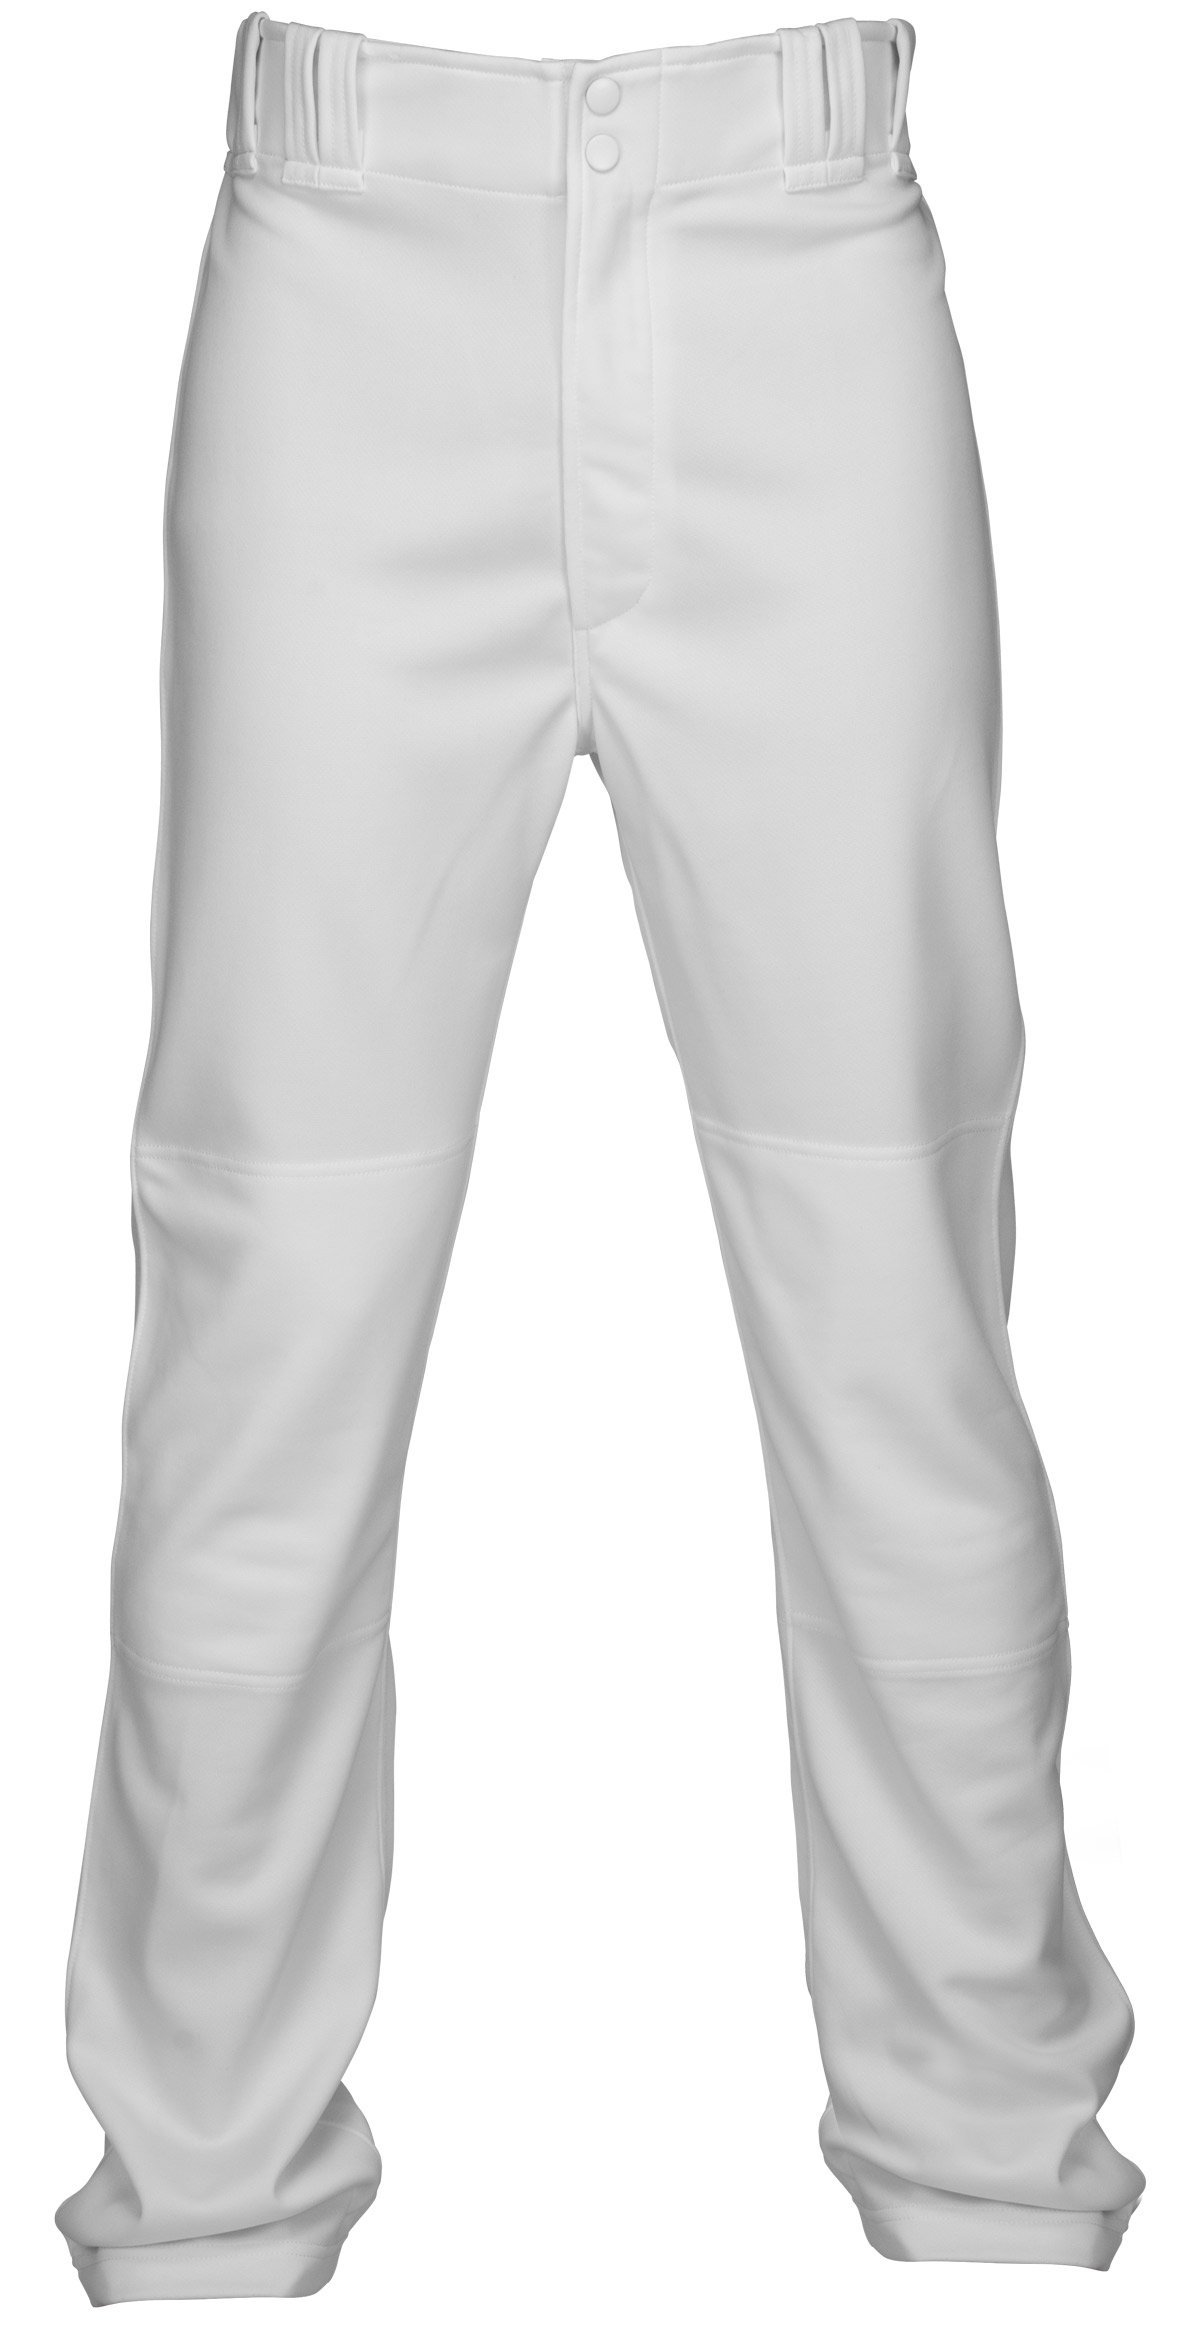 Marucci Youth Elite Double Knit Baseball Pant, White, XX-Large by Marucci